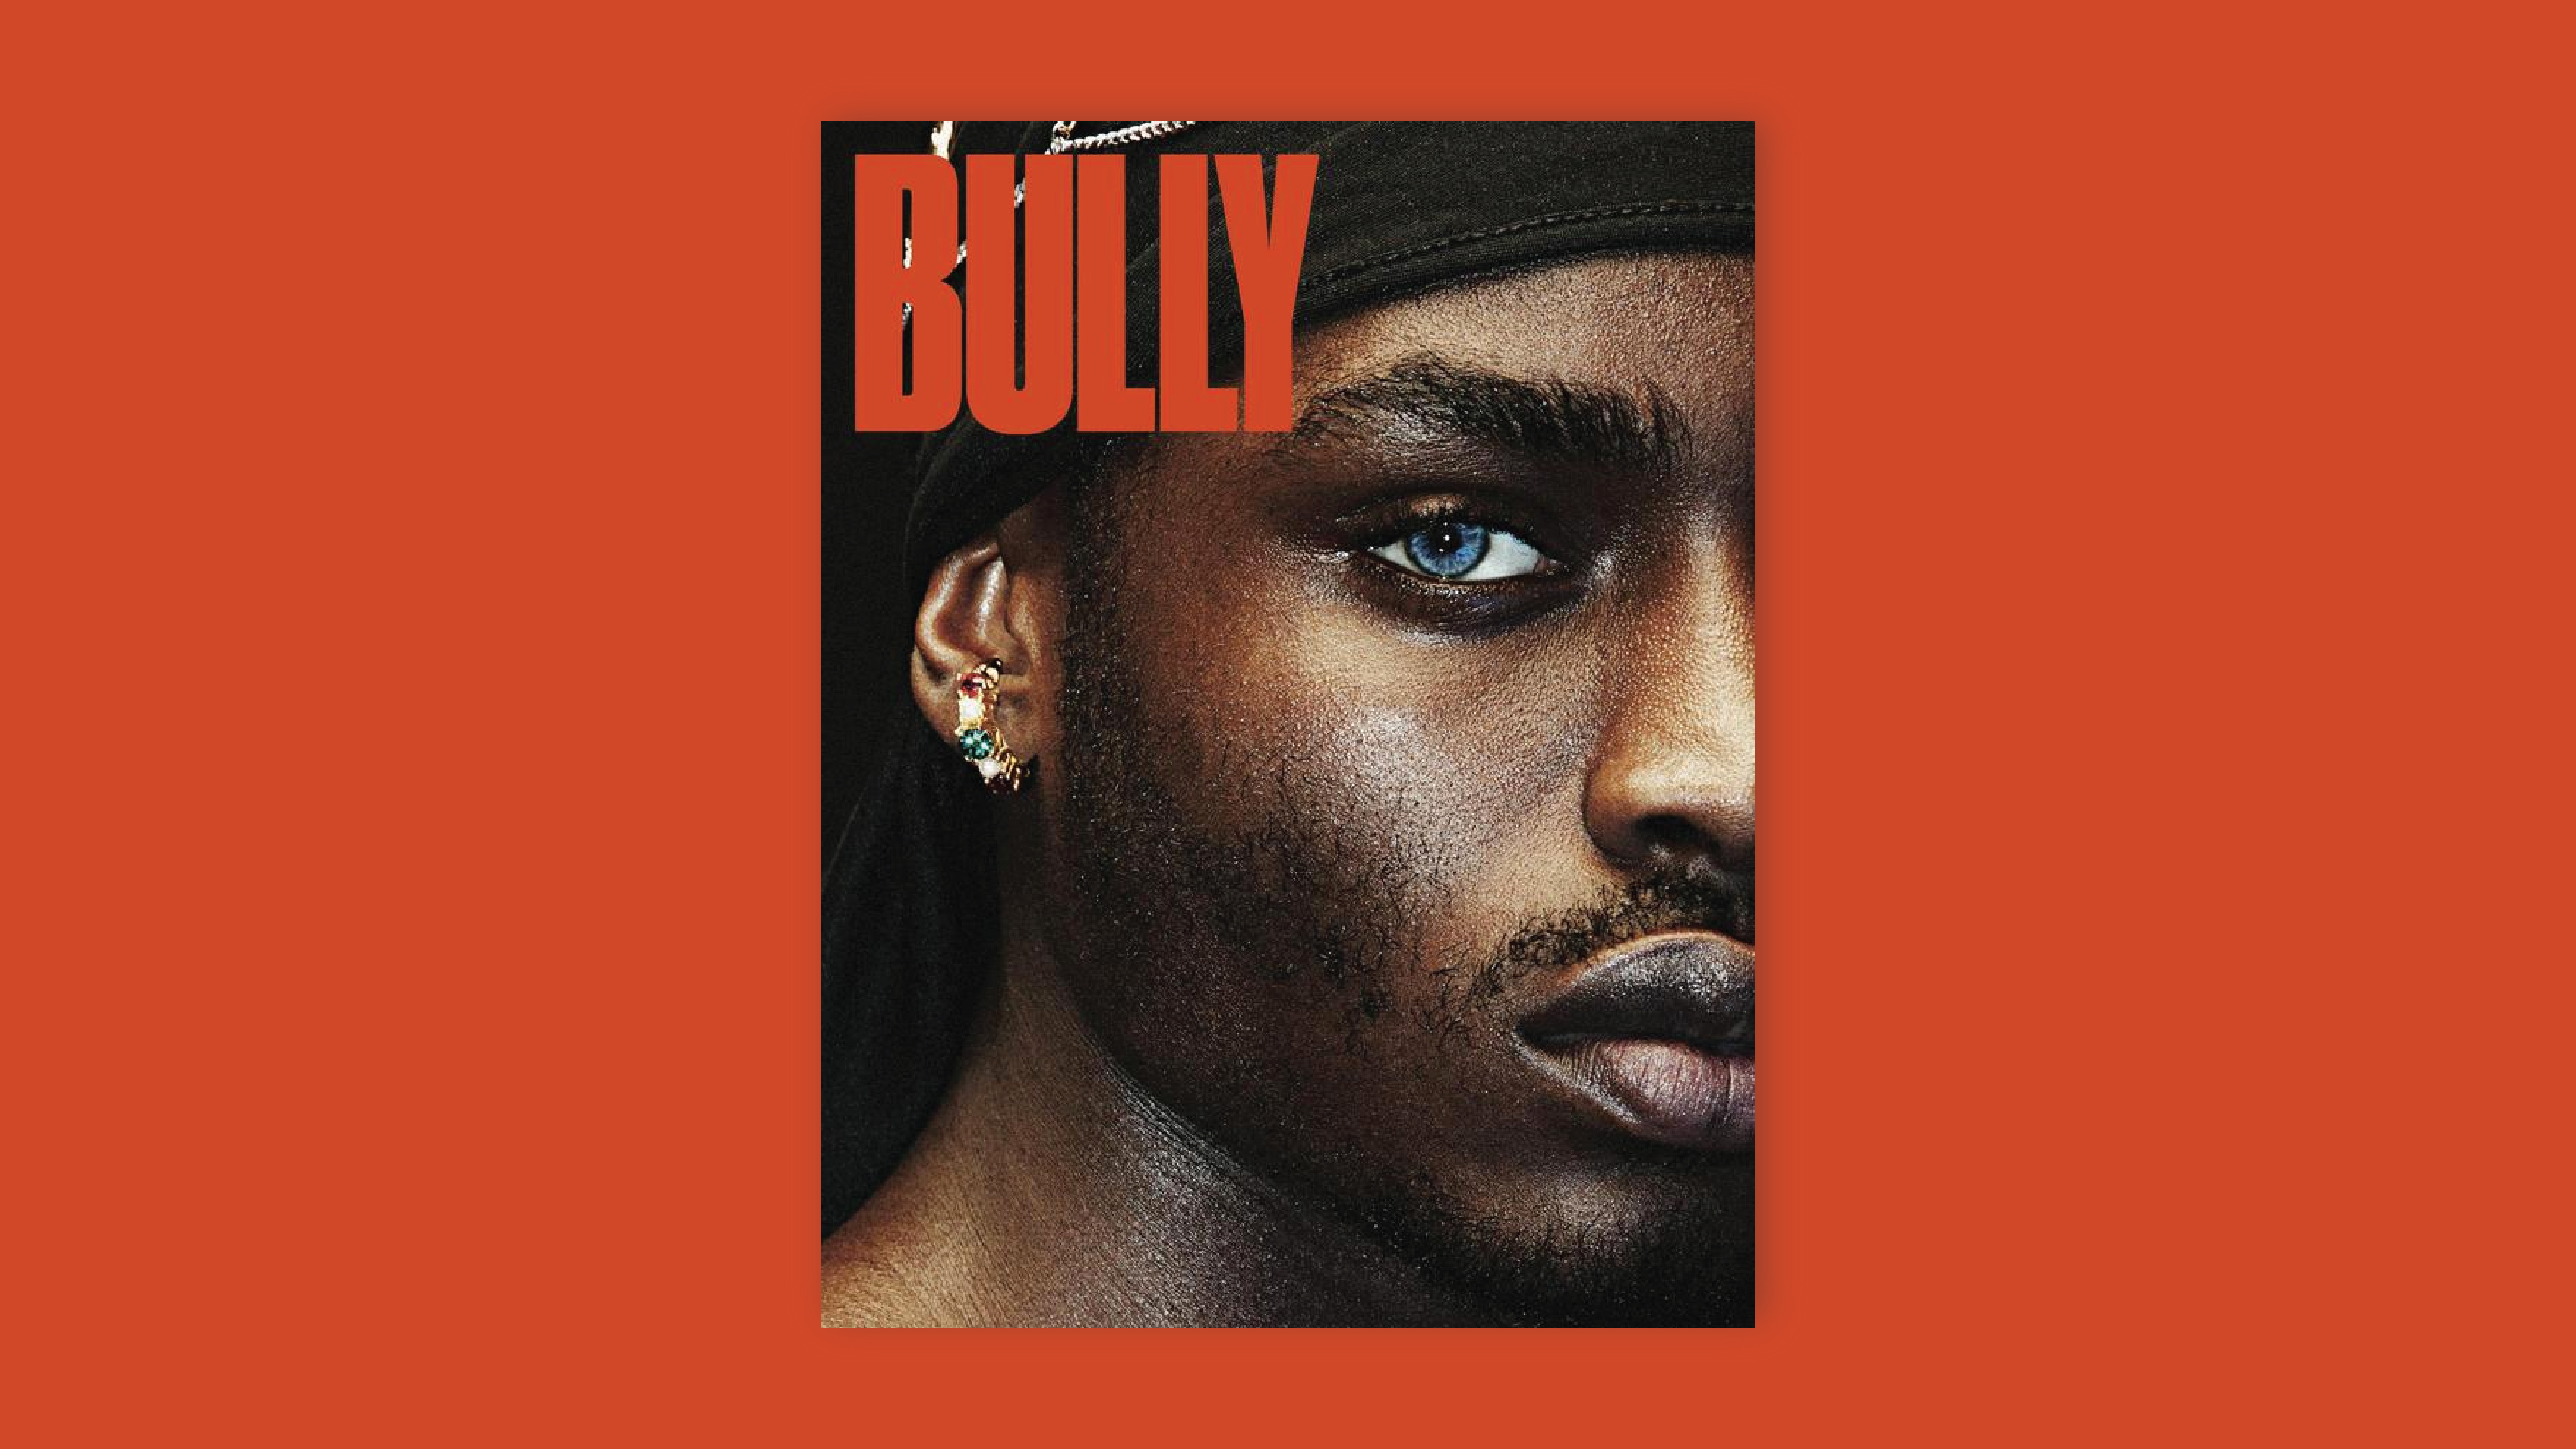 Bully Magazine by Bobby Bowen featuring Hardware by Ron Wan with Chris, Christy, and Takuma in Hwyl Eau de Parfum by Aesop Skincare and Barnabe Fillion